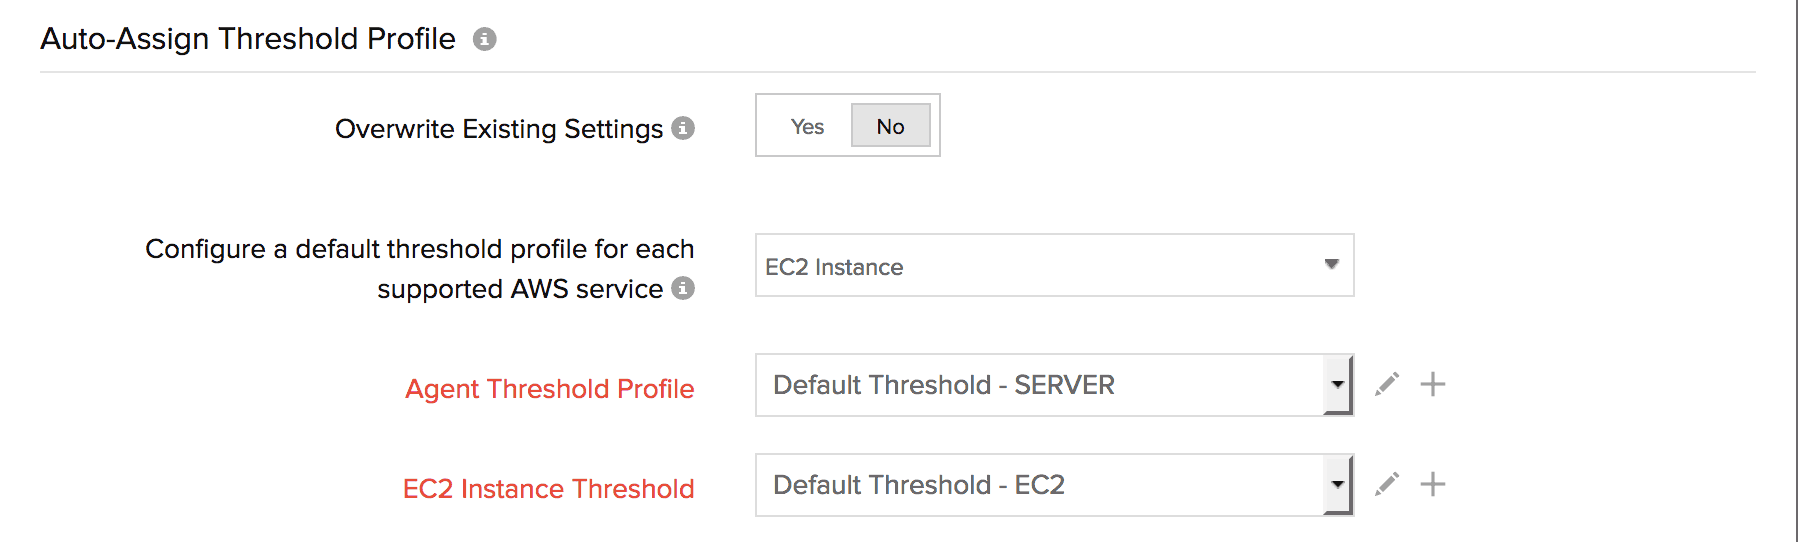 Advanced configurations for your AWS integration: Auto-assign